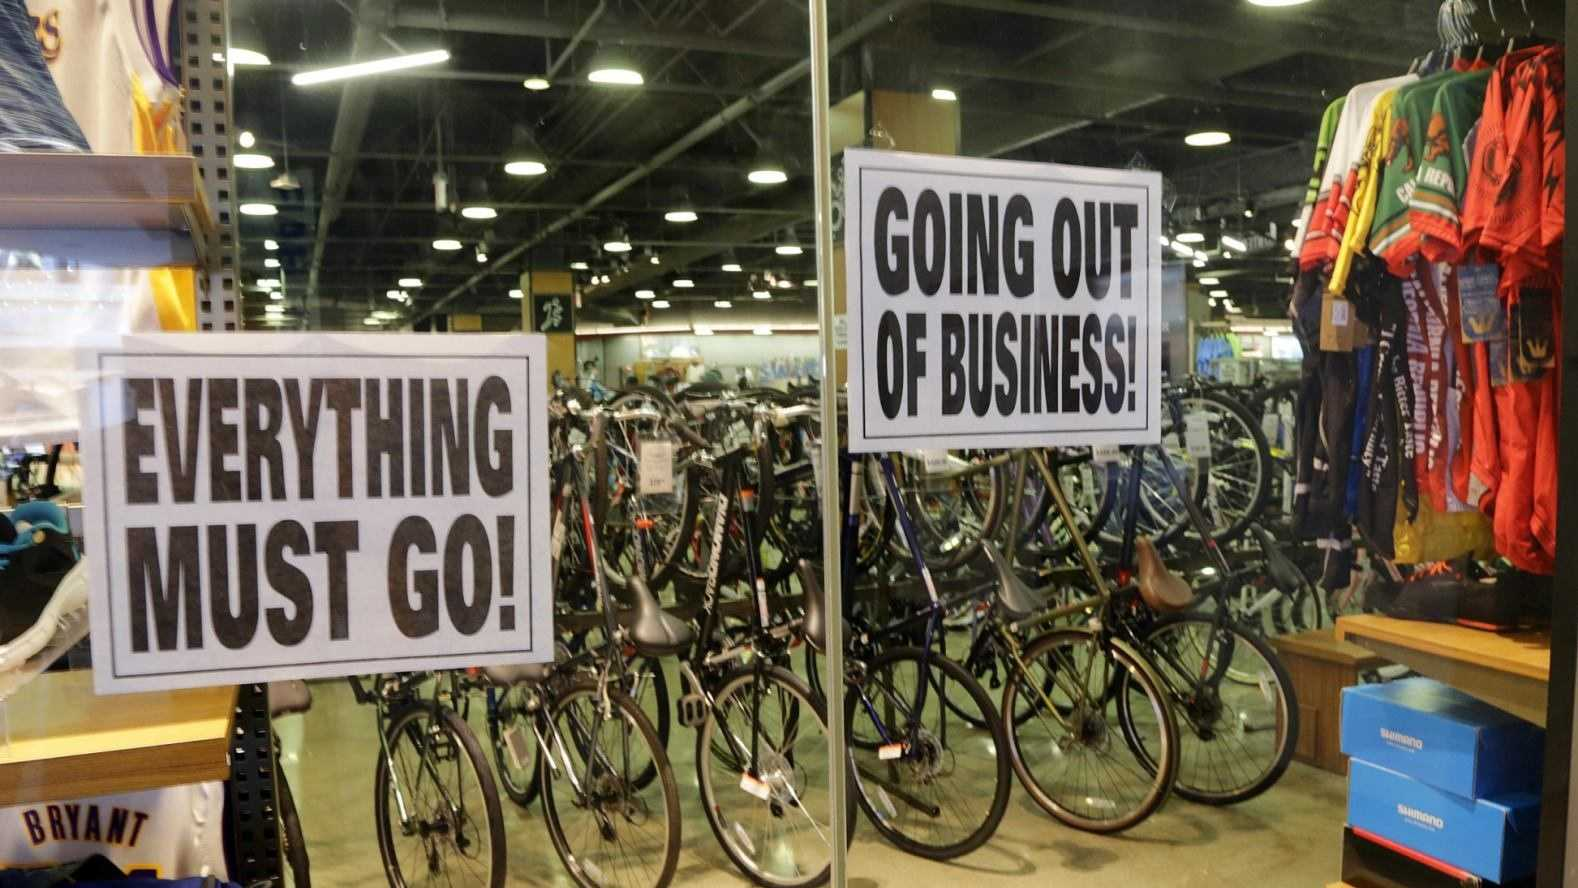 """Going Out Of Business"" and other signs are displayed at a Sport Chalet store in downtown Los Angeles is seen Saturday, April 16, 2016. The Southern California-based chain says it has begun closing all its stores and has stopped selling merchandise online. Founded in 1959, the sporting goods company has about 50 locations in California, Arizona, Nevada and Utah. The company offered no explanation for the closure."